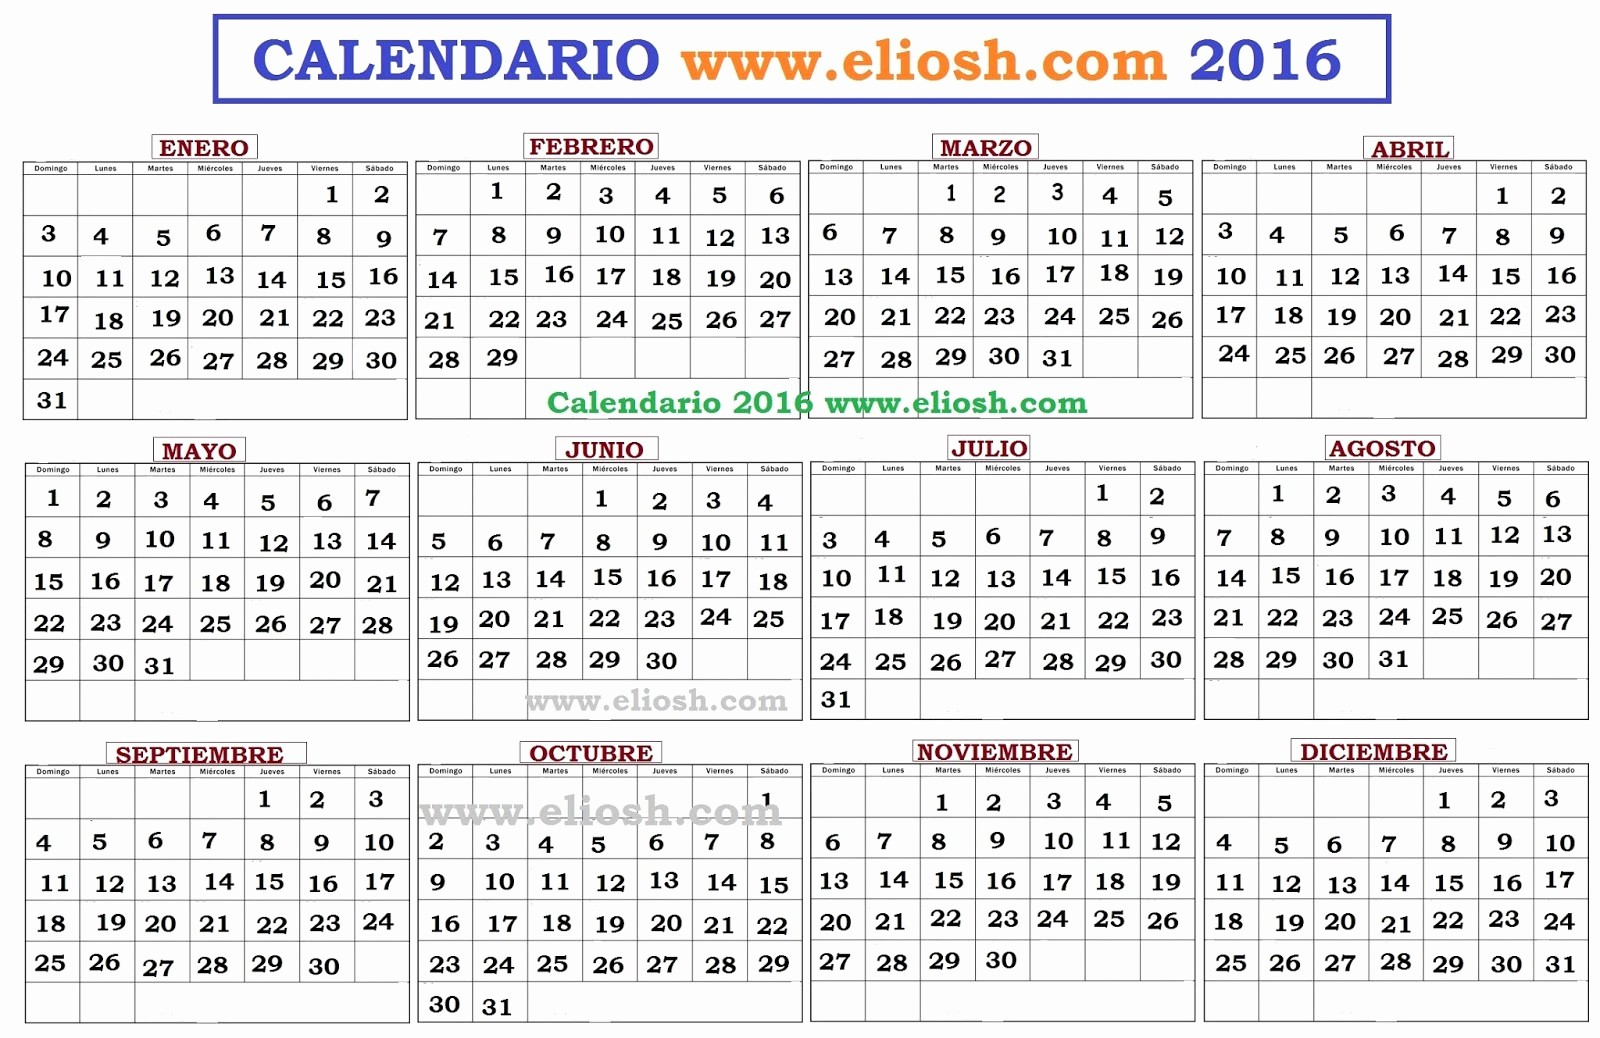 Calendario Juliano 2017 Para Imprimir Lovely Calendario Juliano 2016 New Calendar Collection 2019